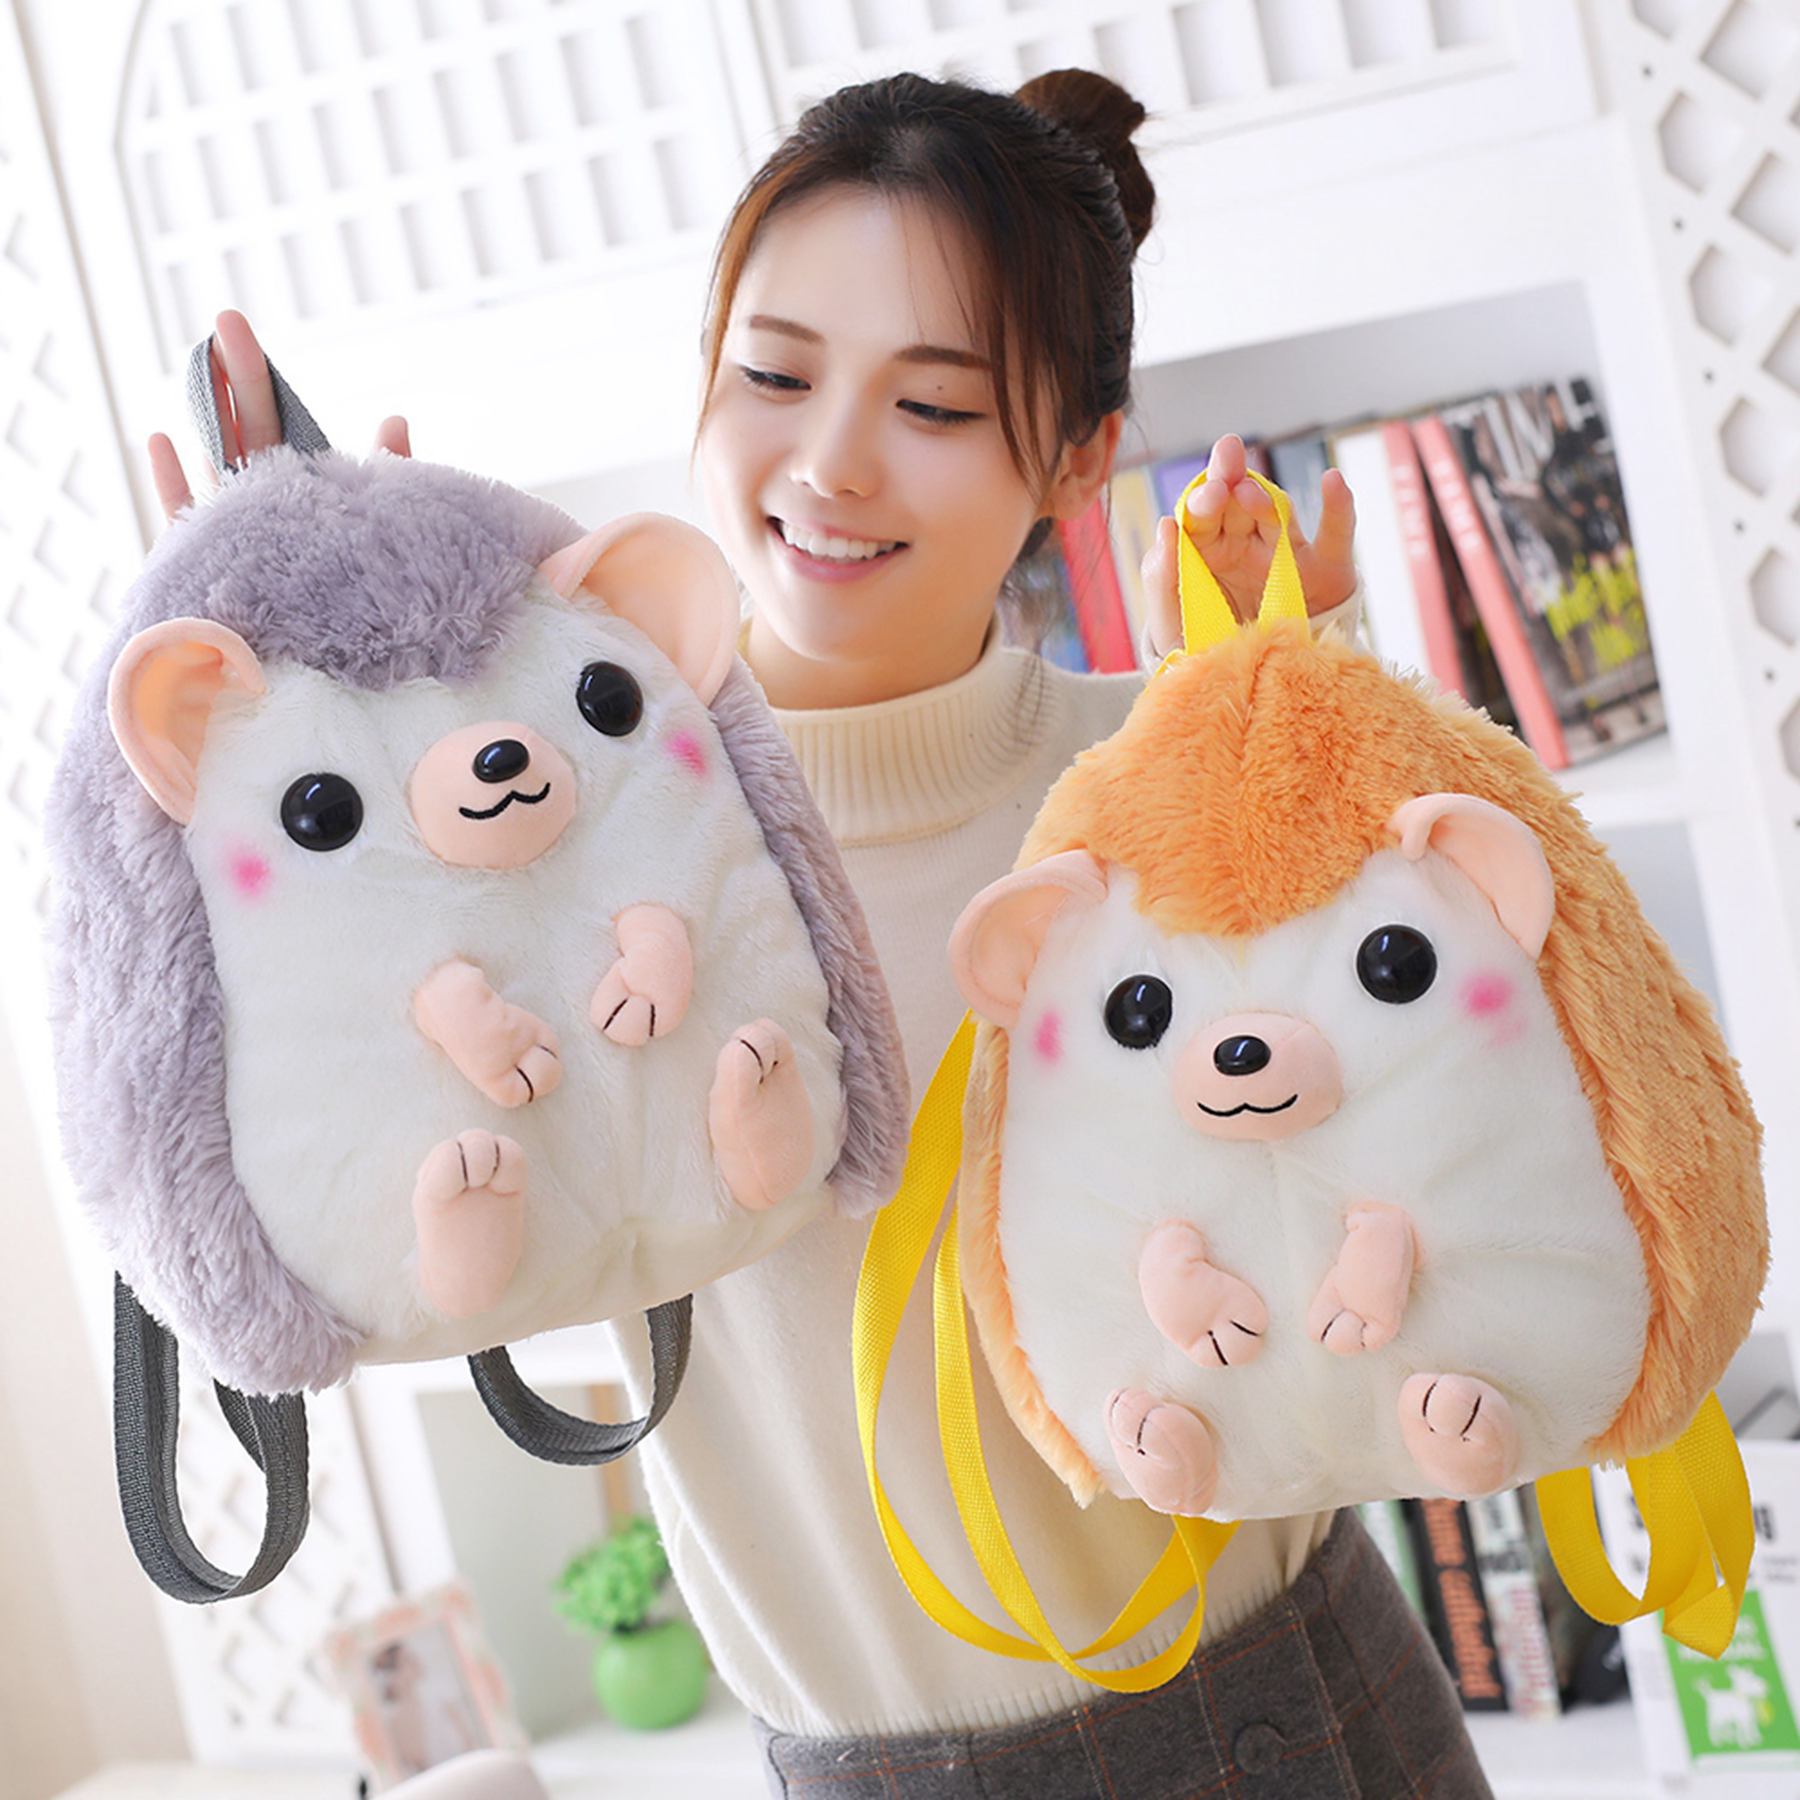 Backpacks Knapsack Hedgehog Plushie-Bags Animal Cartoon Kawaii for Kids Toys Stuffed